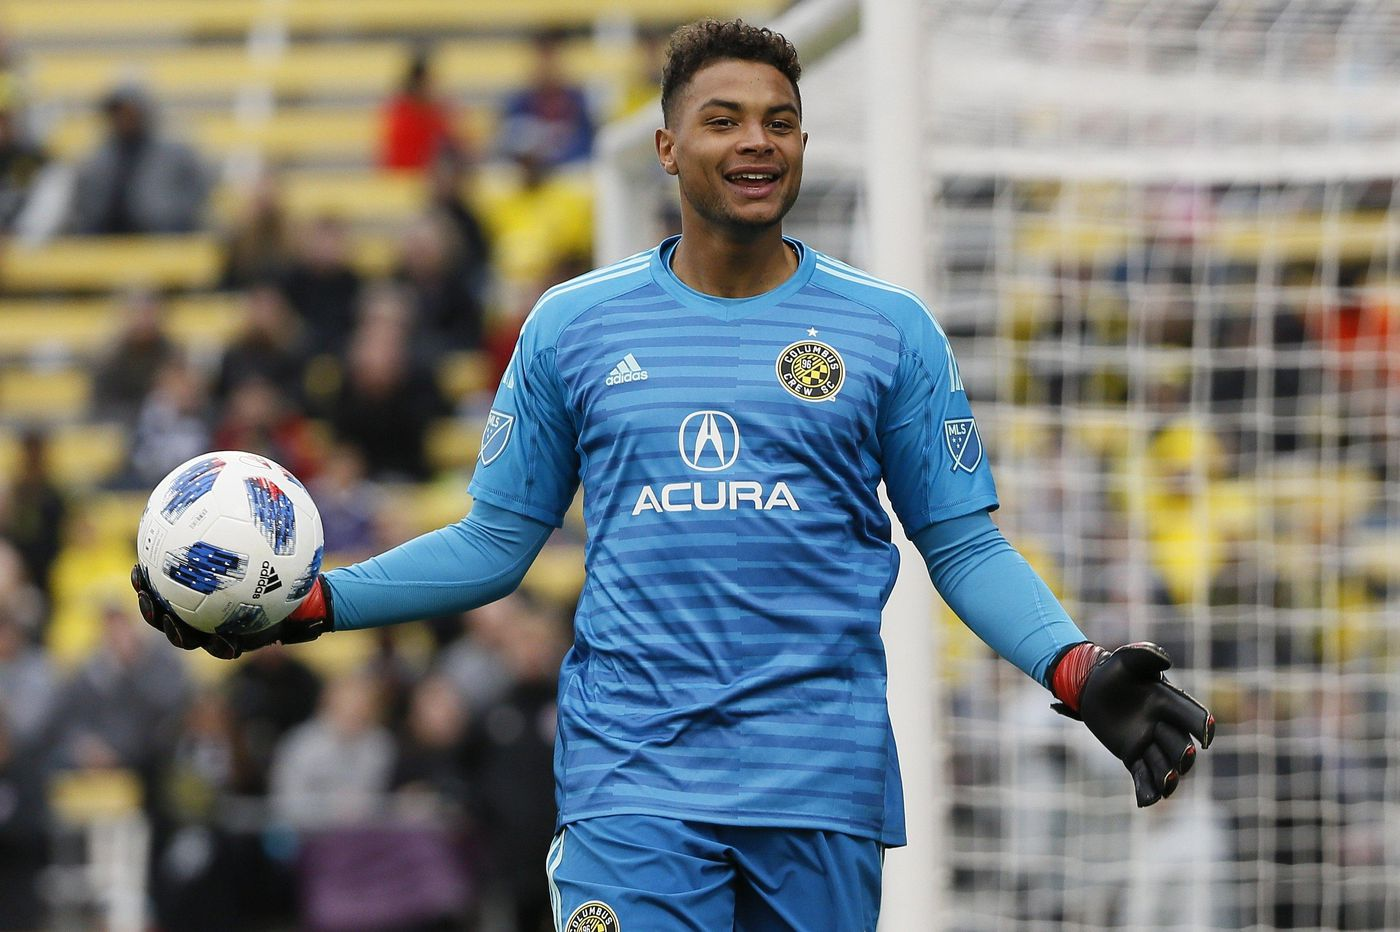 Coatesville's Zack Steffen prepares for Gold Cup with USMNT, and big move to Europe